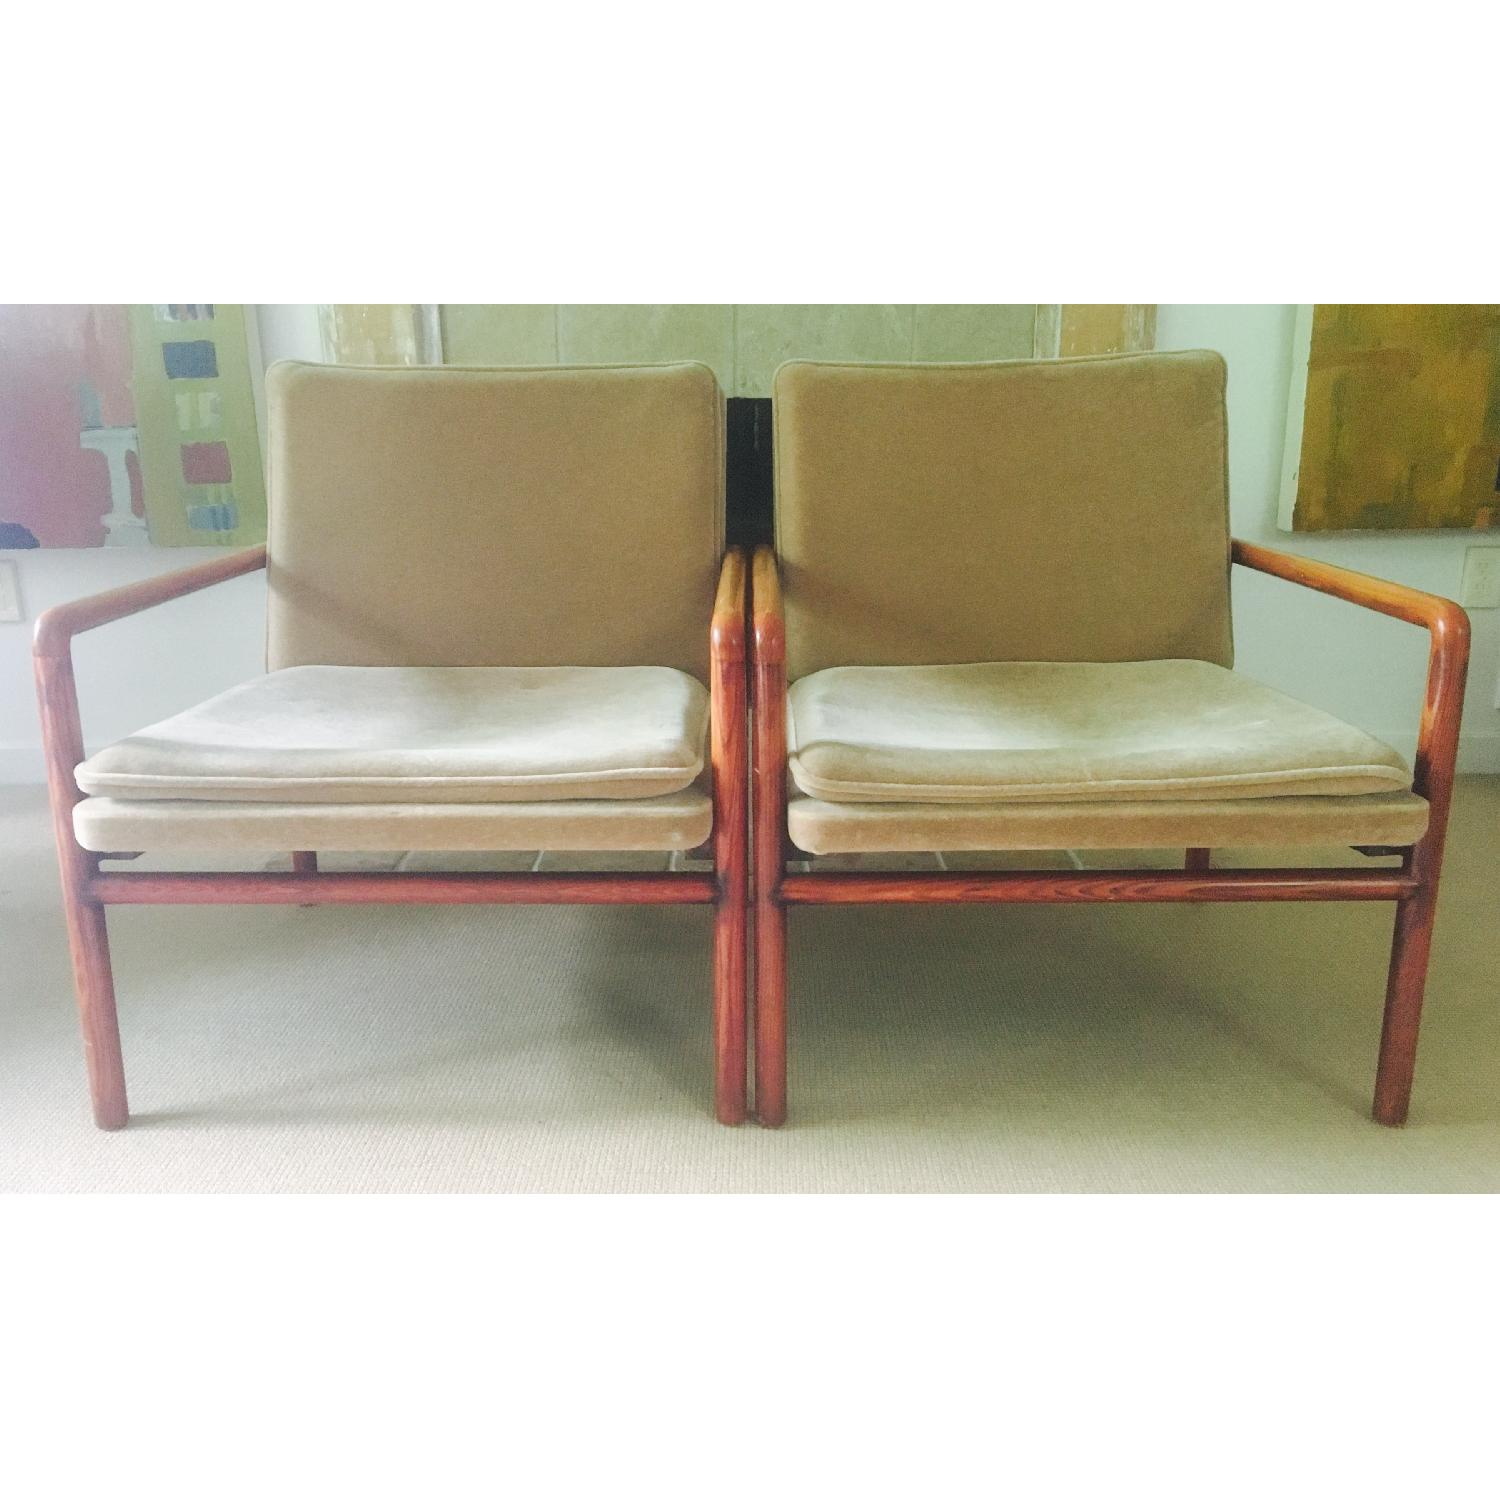 Mid Century Lounge Chairs - image-1